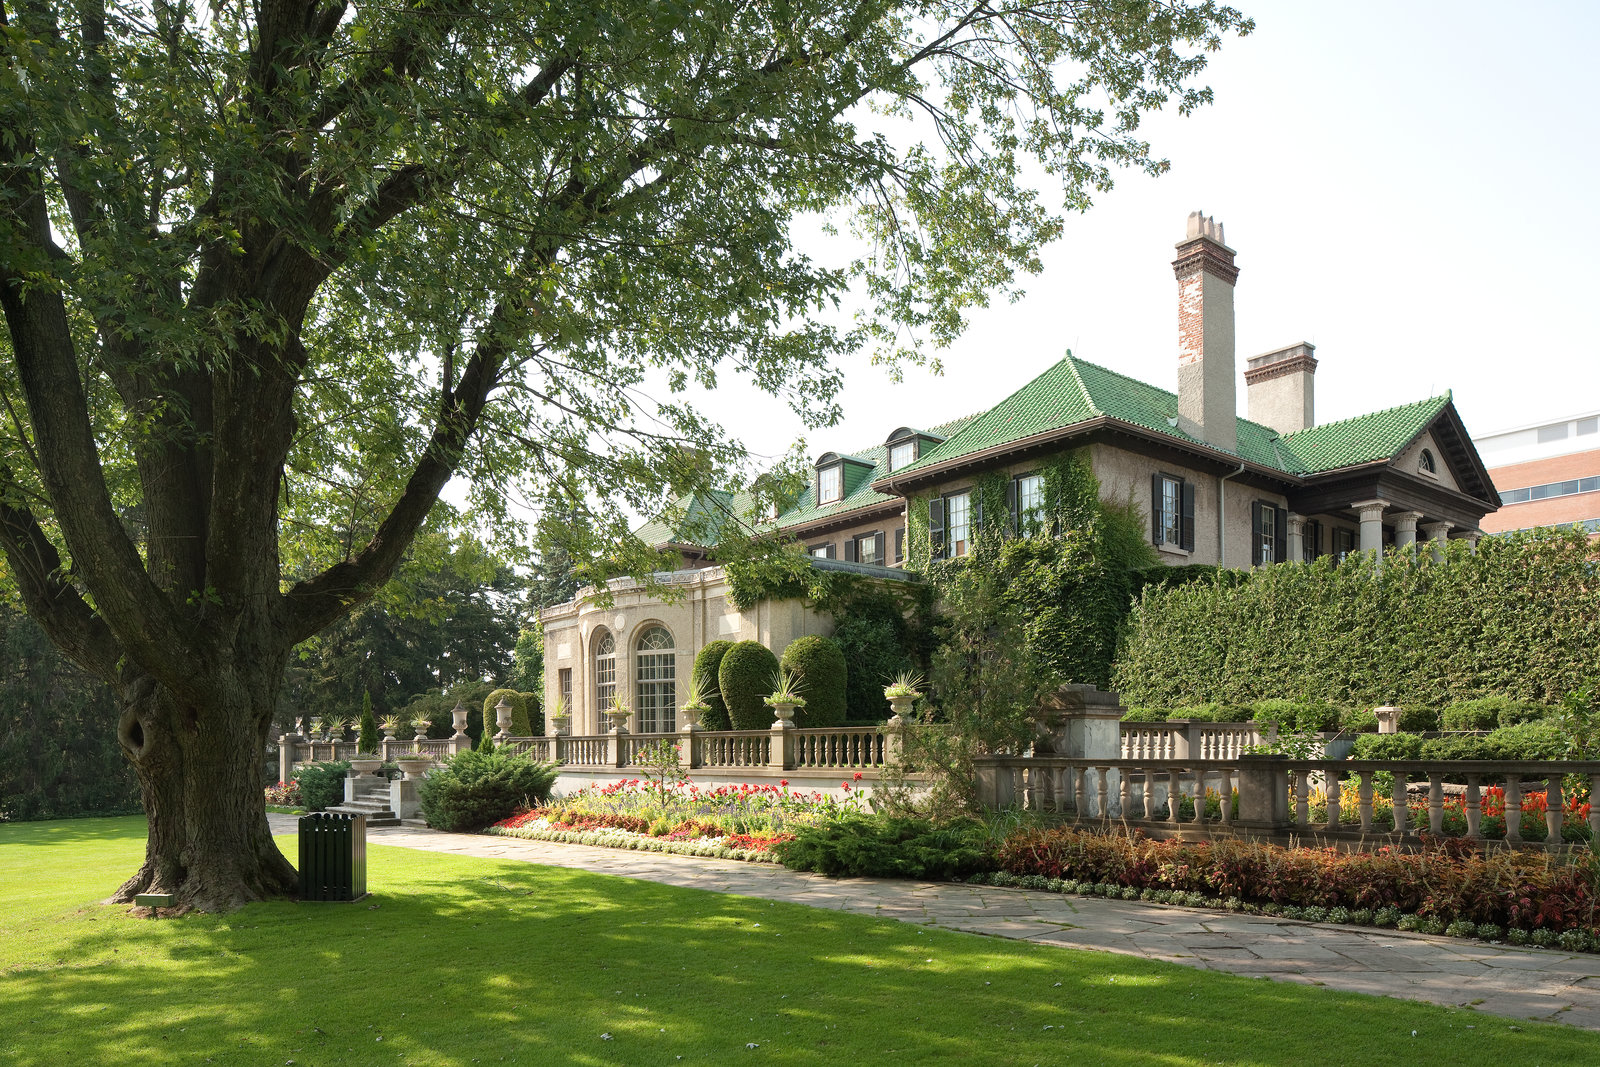 Inspired by early 20th century Beaux-Arts design, Parkwood National Heritage Site is the ideal location for period and fantasy films, as well as historical documentaries.